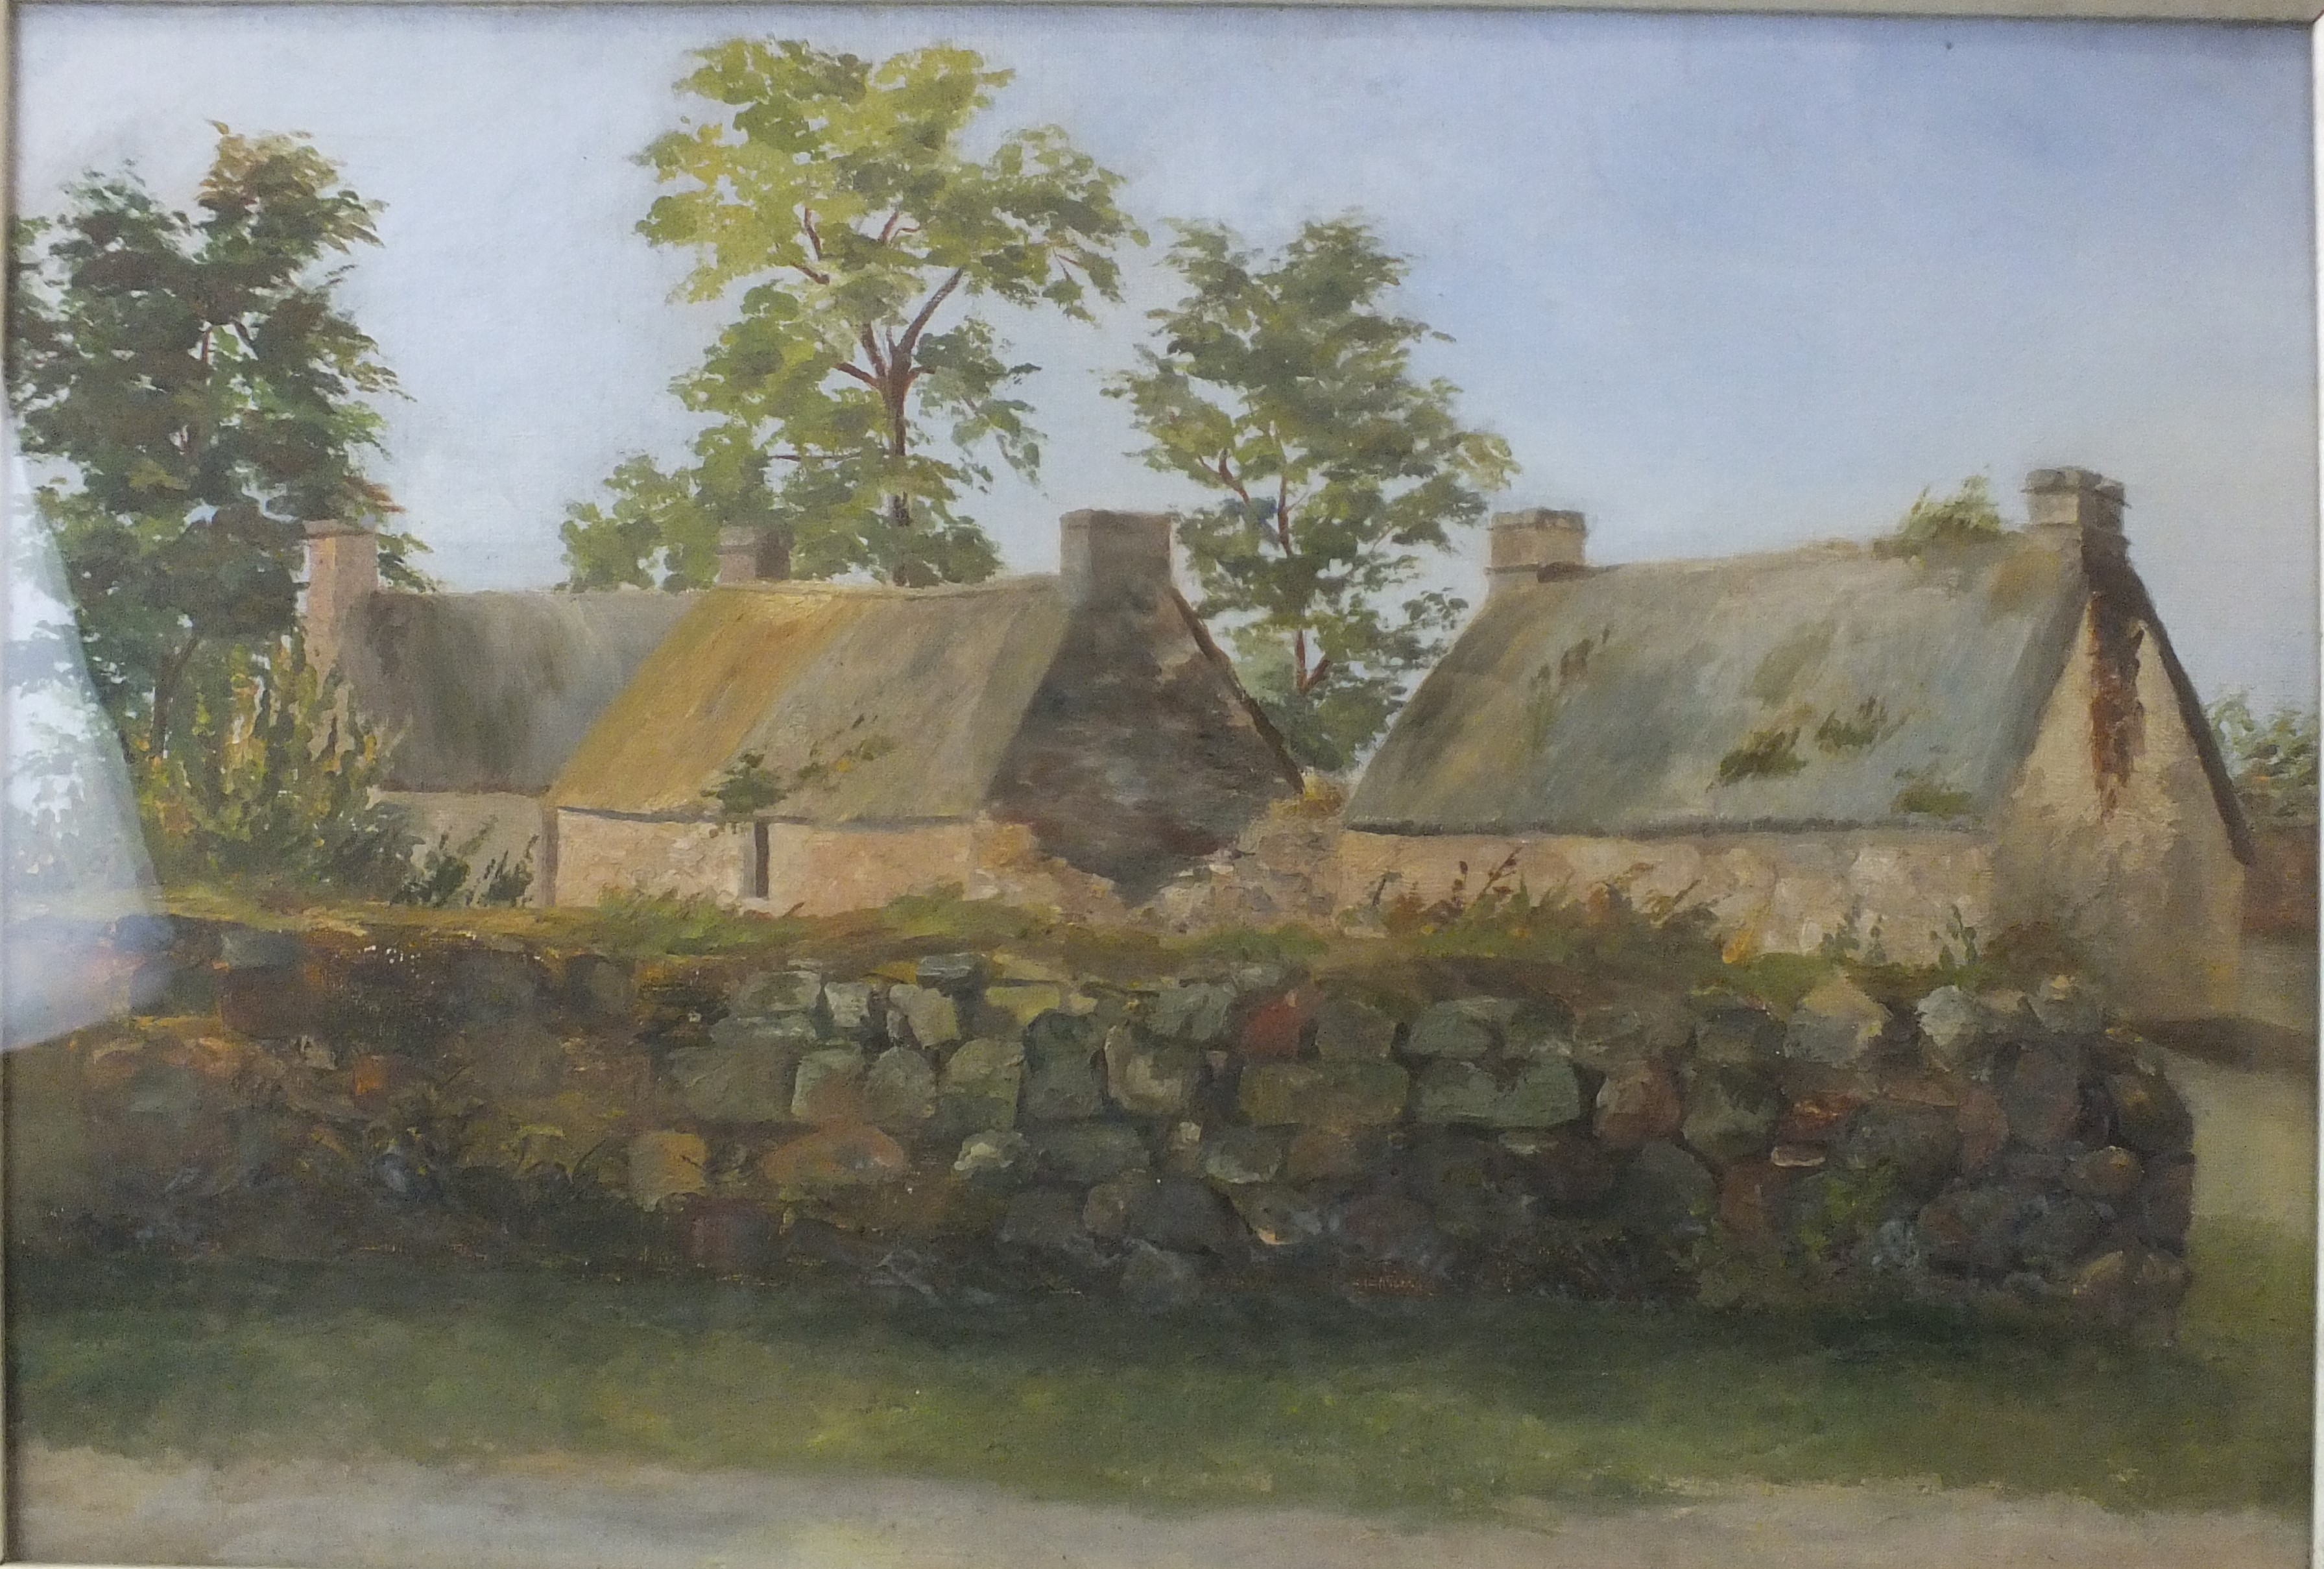 Late-19th/early-20th century GROUP OF THREE THATCHED COTTAGES BEHIND A STONE WALL Unsigned oil on - Image 2 of 3